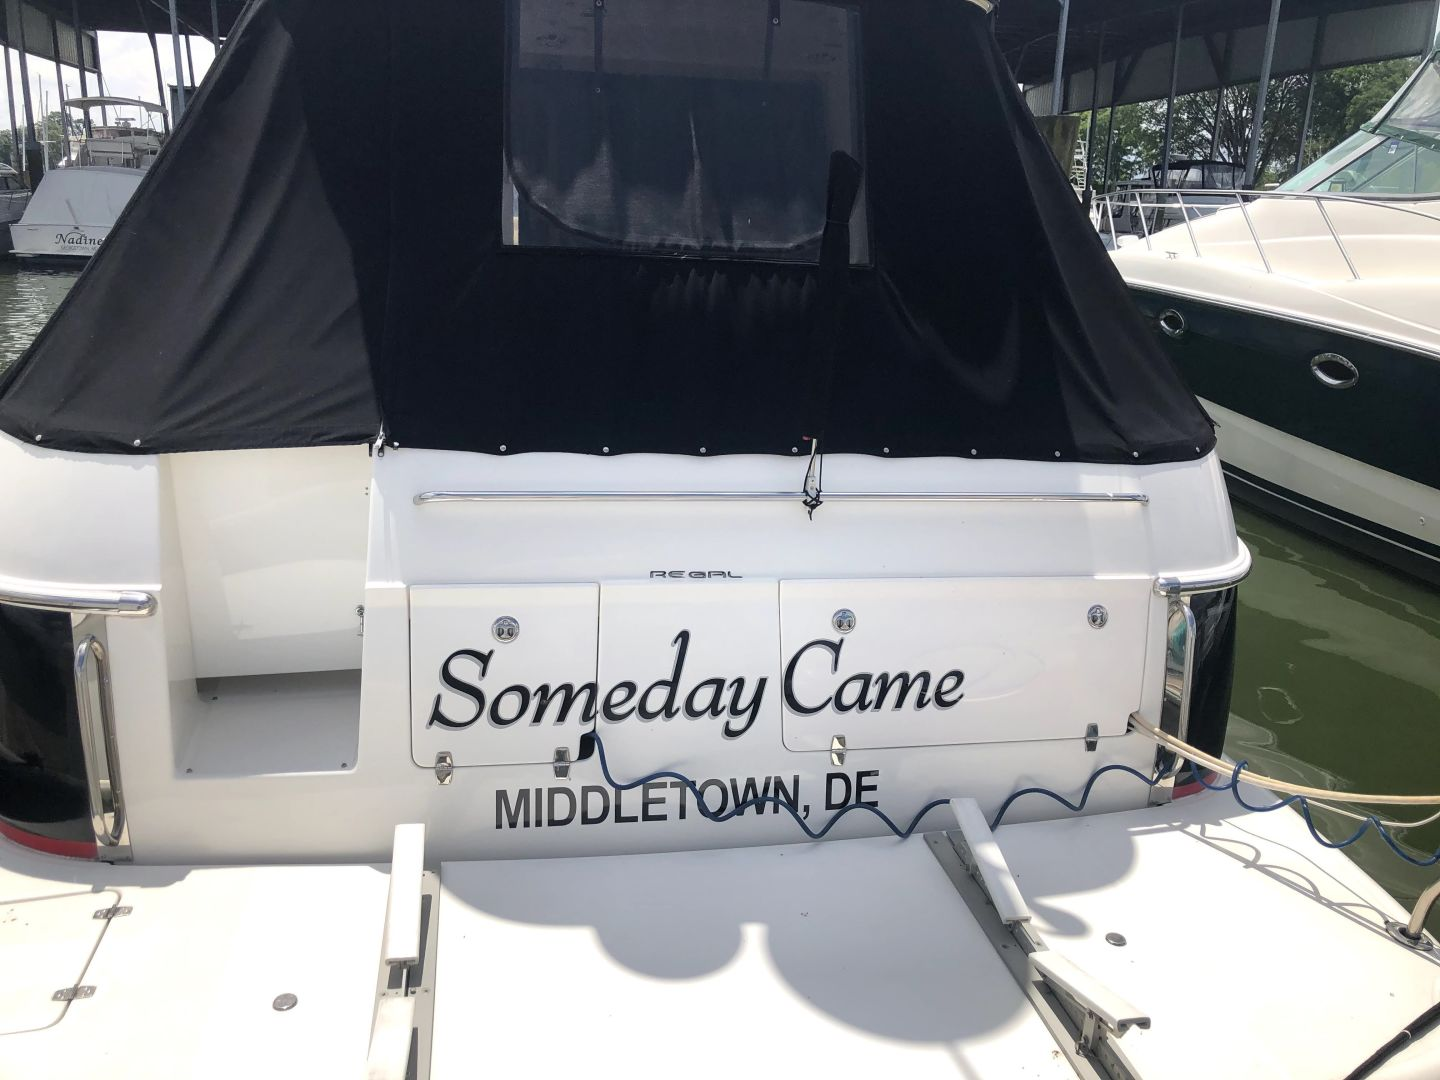 Picure of Someday Came